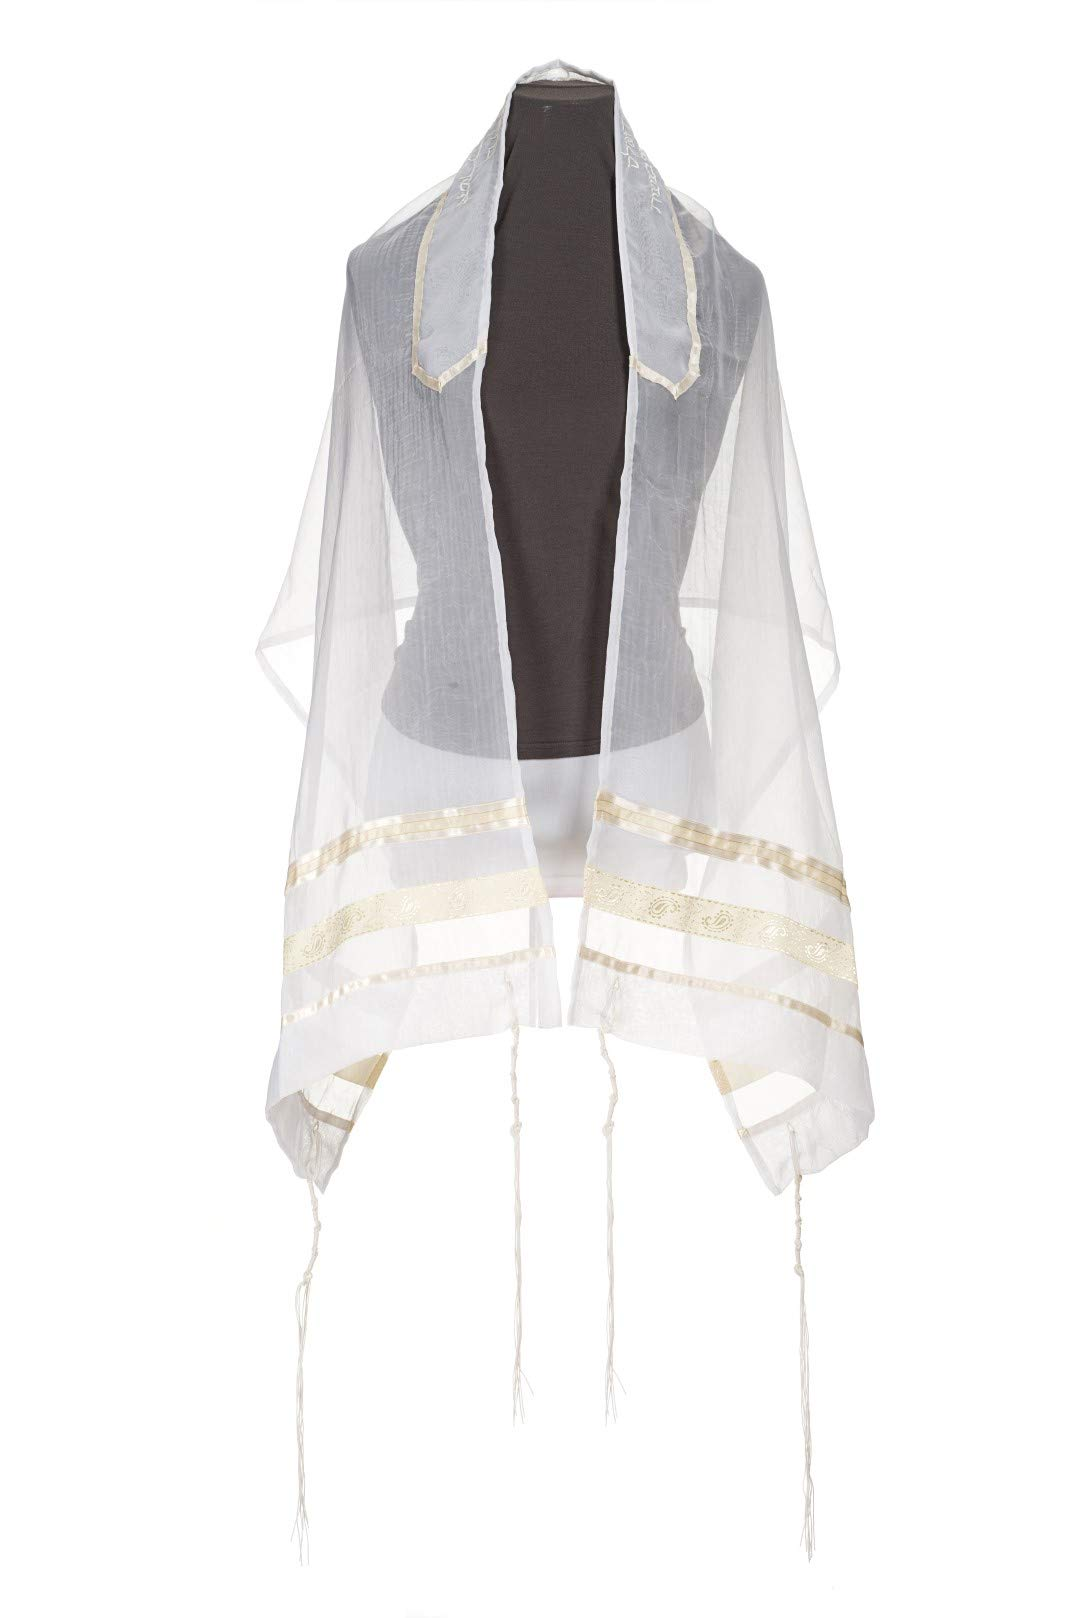 Cream Paisley Bat Mitzvah Tallit, women's Tallit,70 inches X 20 inches by Galilee Silks from Israel